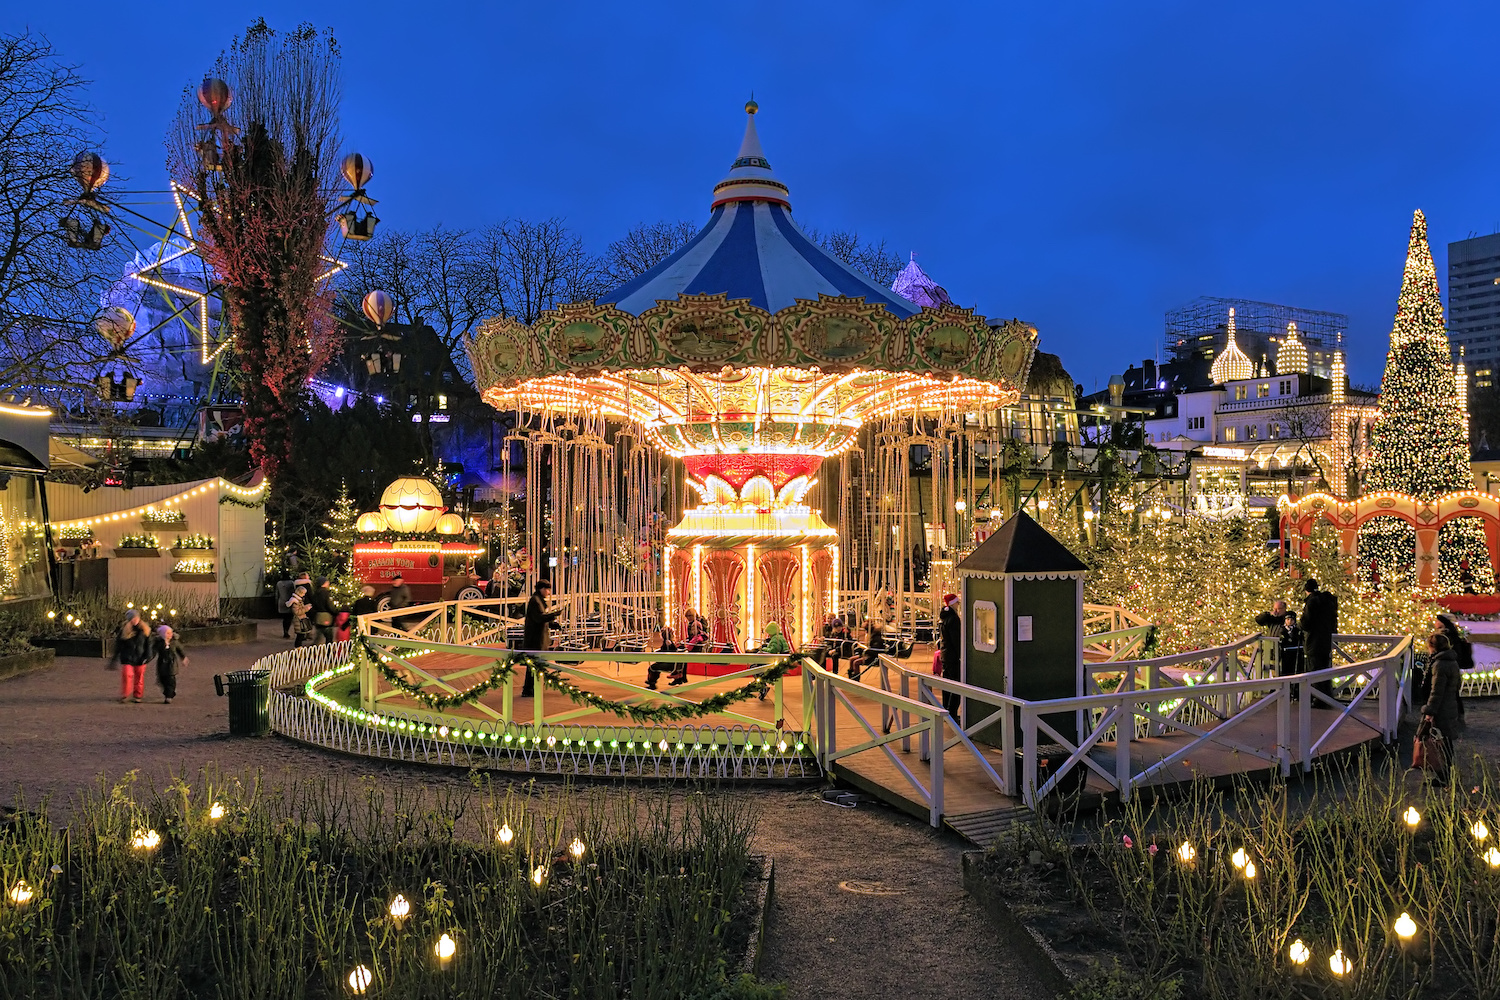 Endearing Christmas markets in Europe